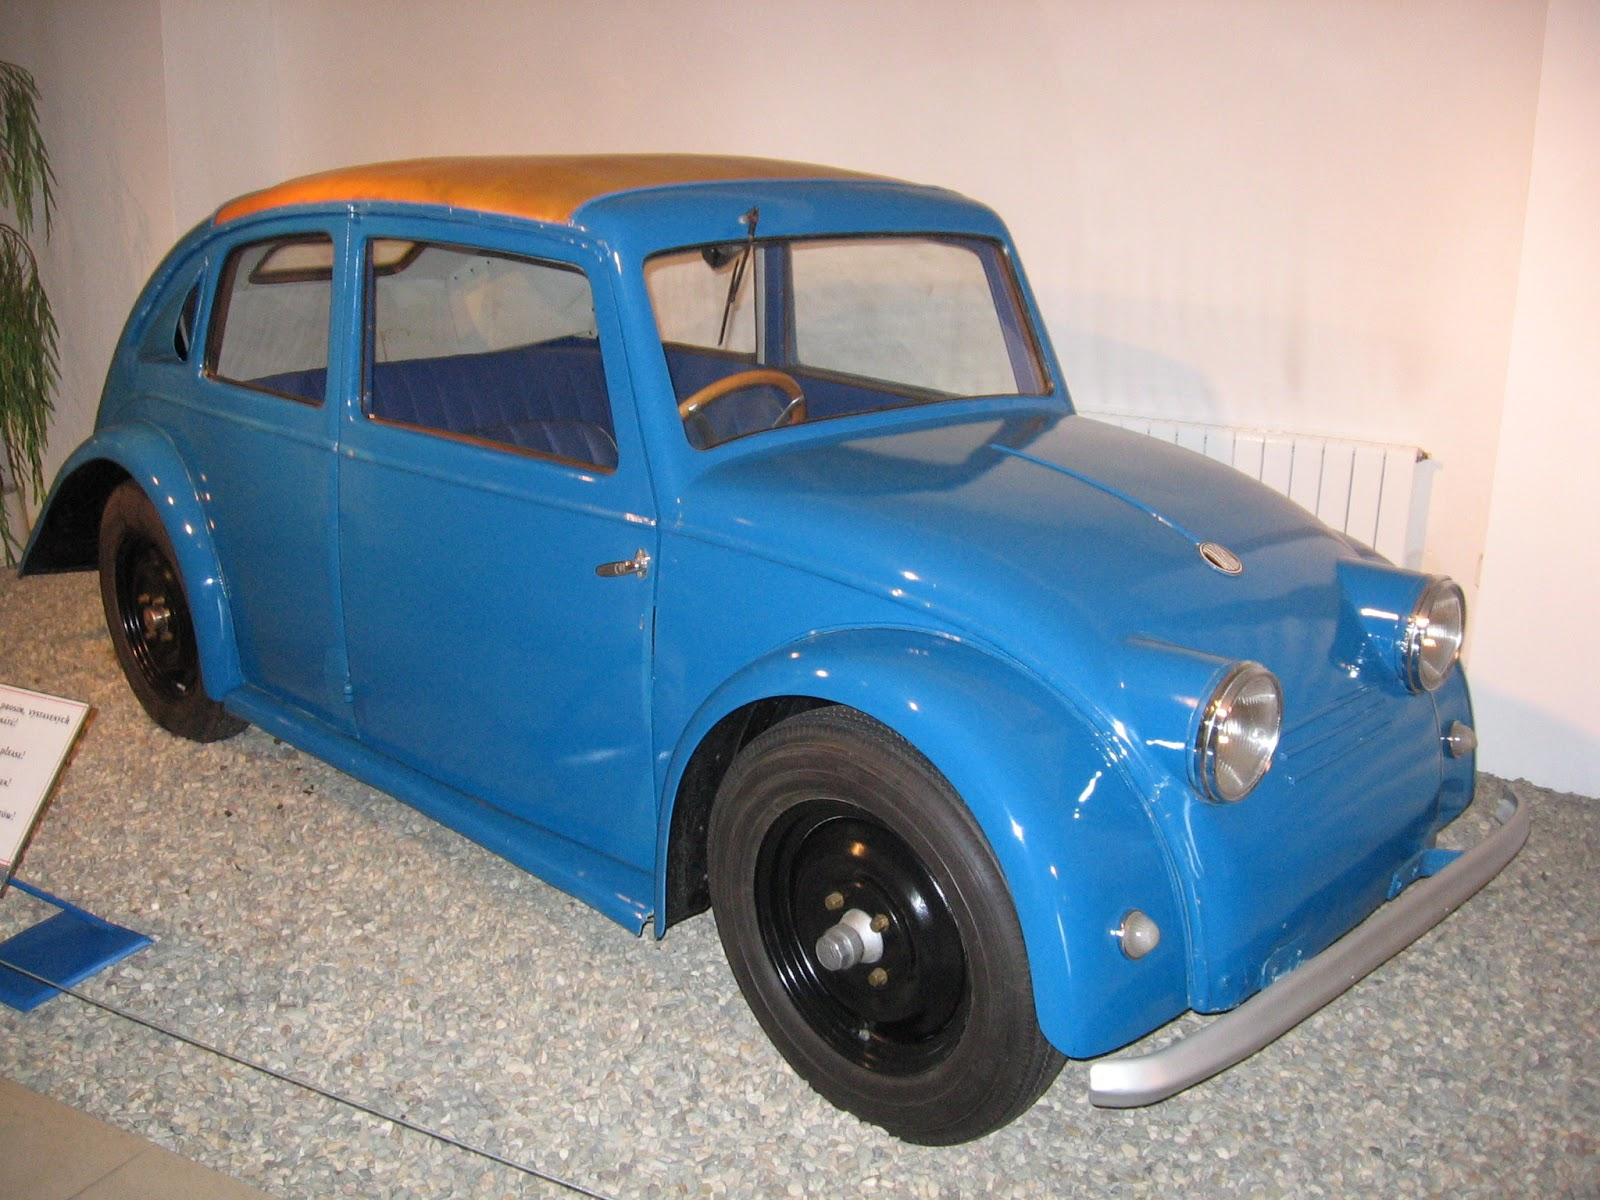 Have A Close Look At The Little Blue Car Pictured Above It Looks Bit Like One Of Those Cast Scale Models Original Vw Beetle Doesn T